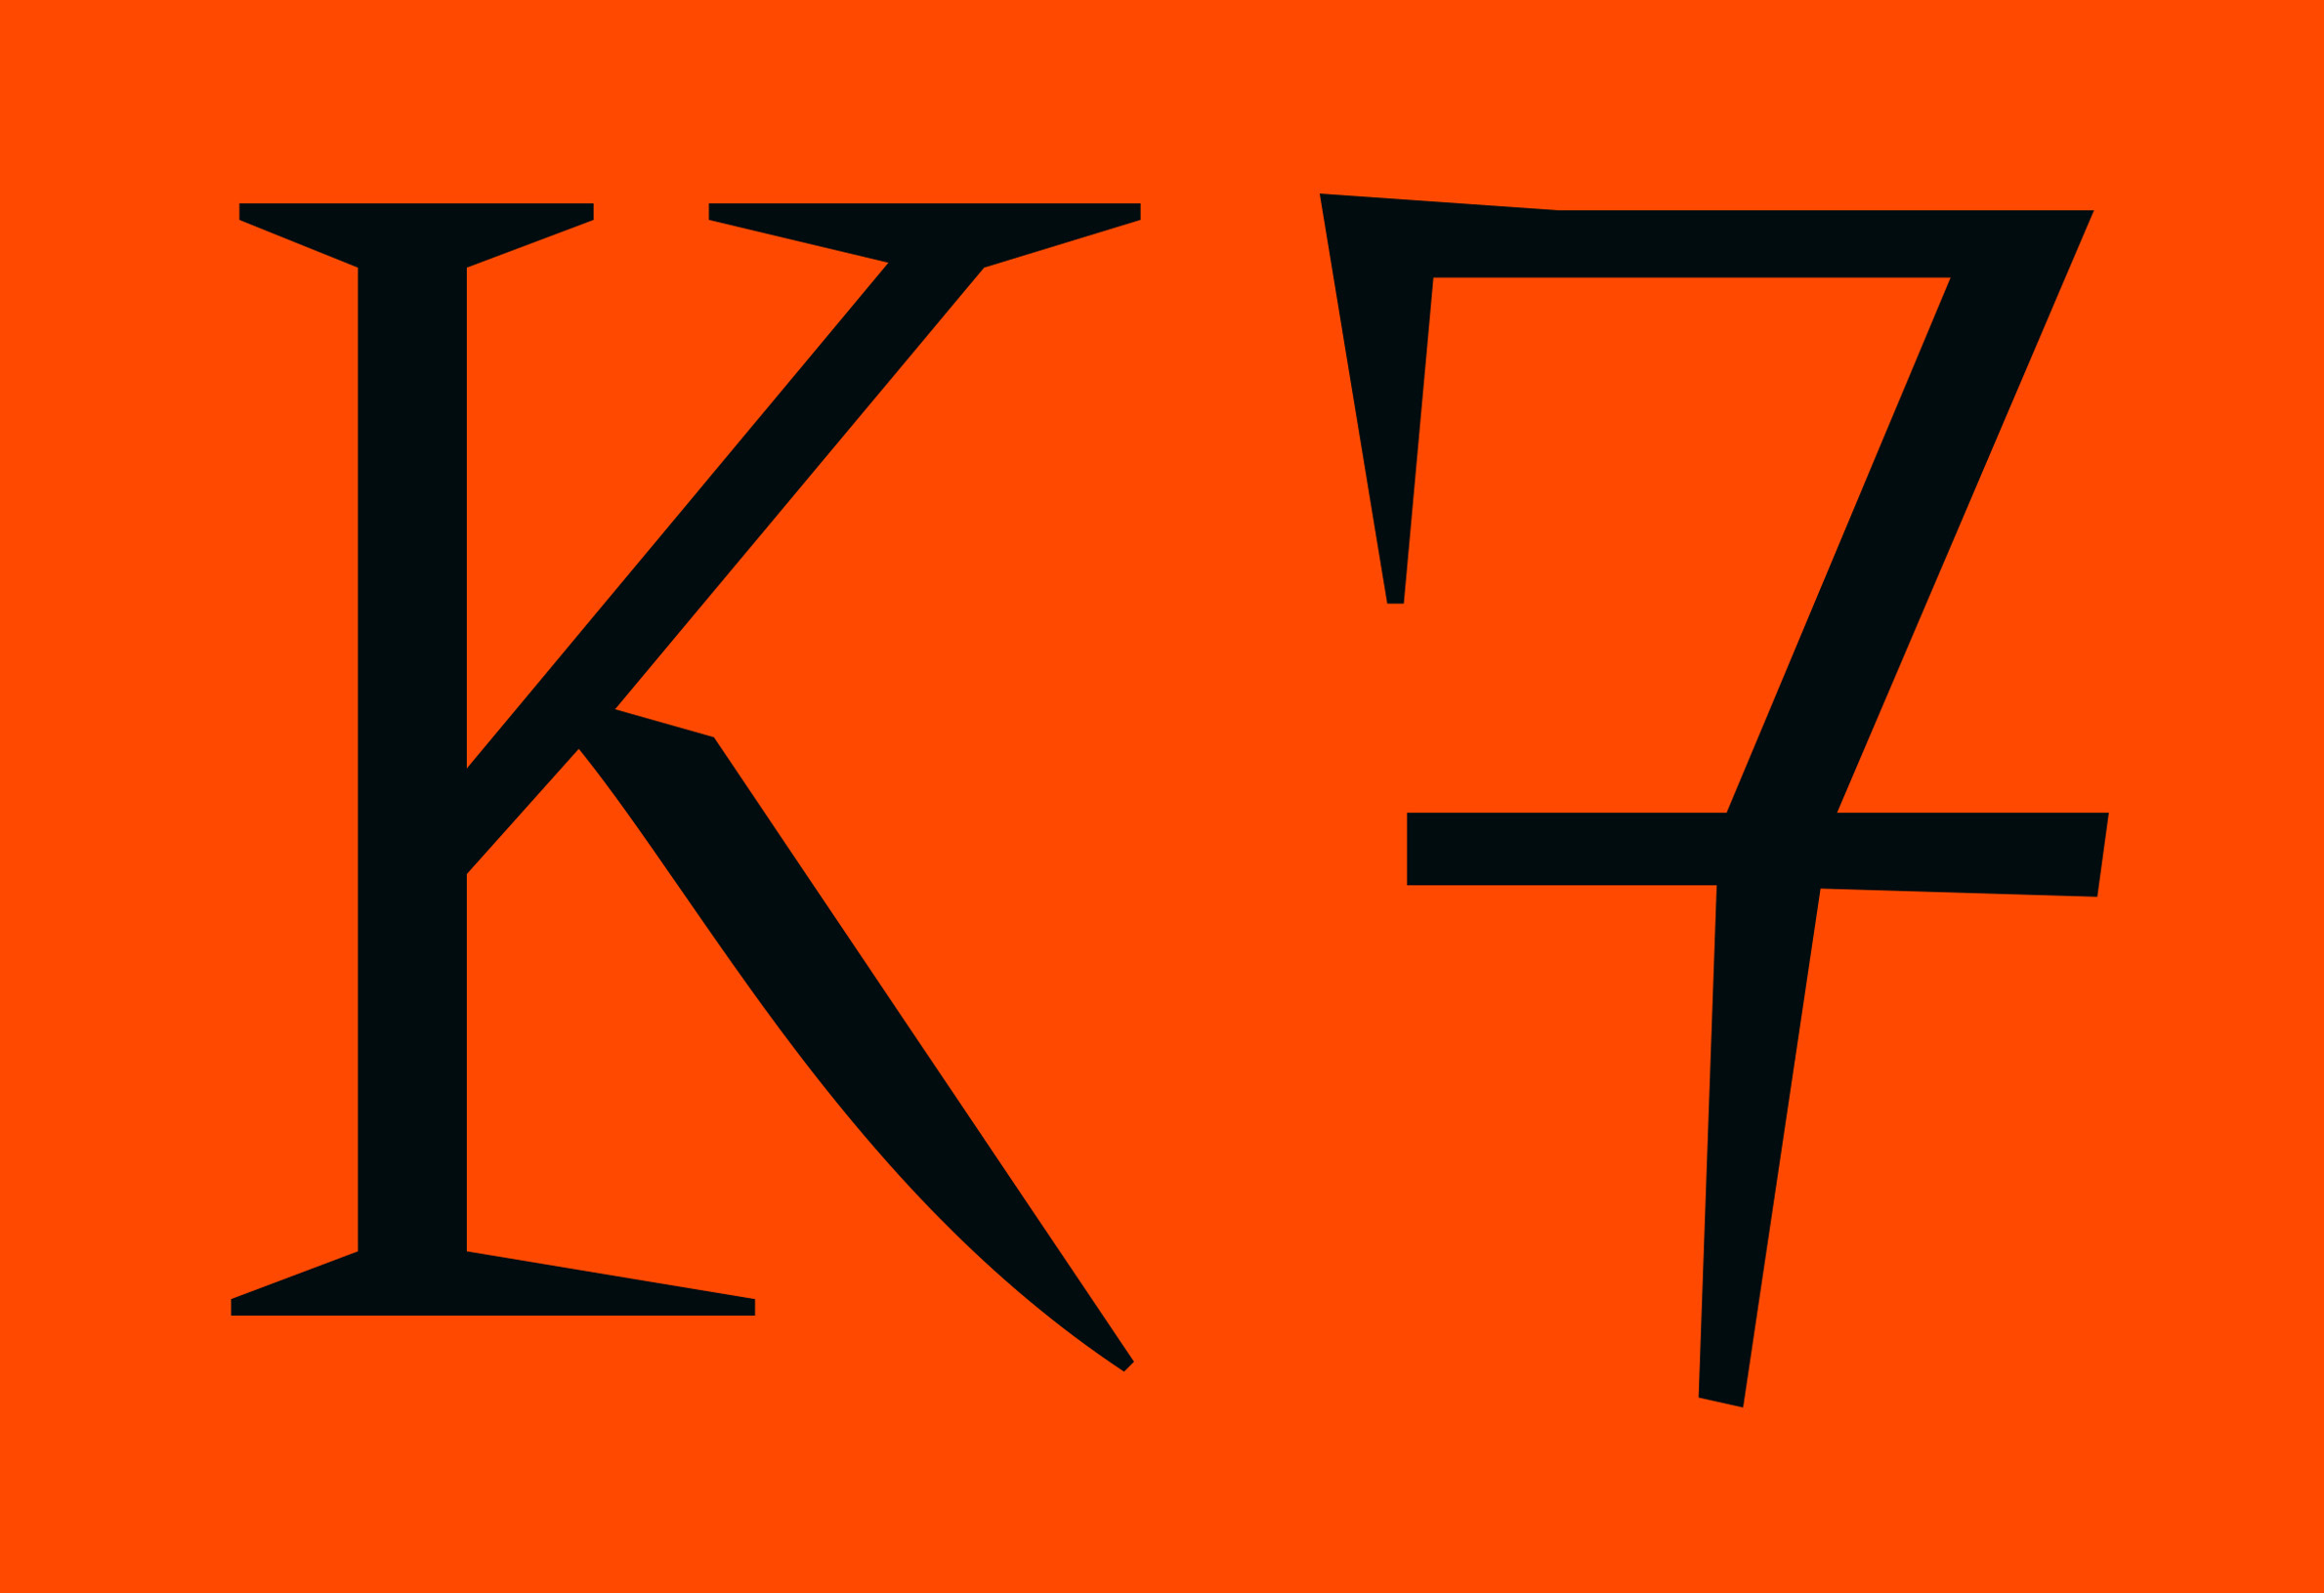 A is for Knif